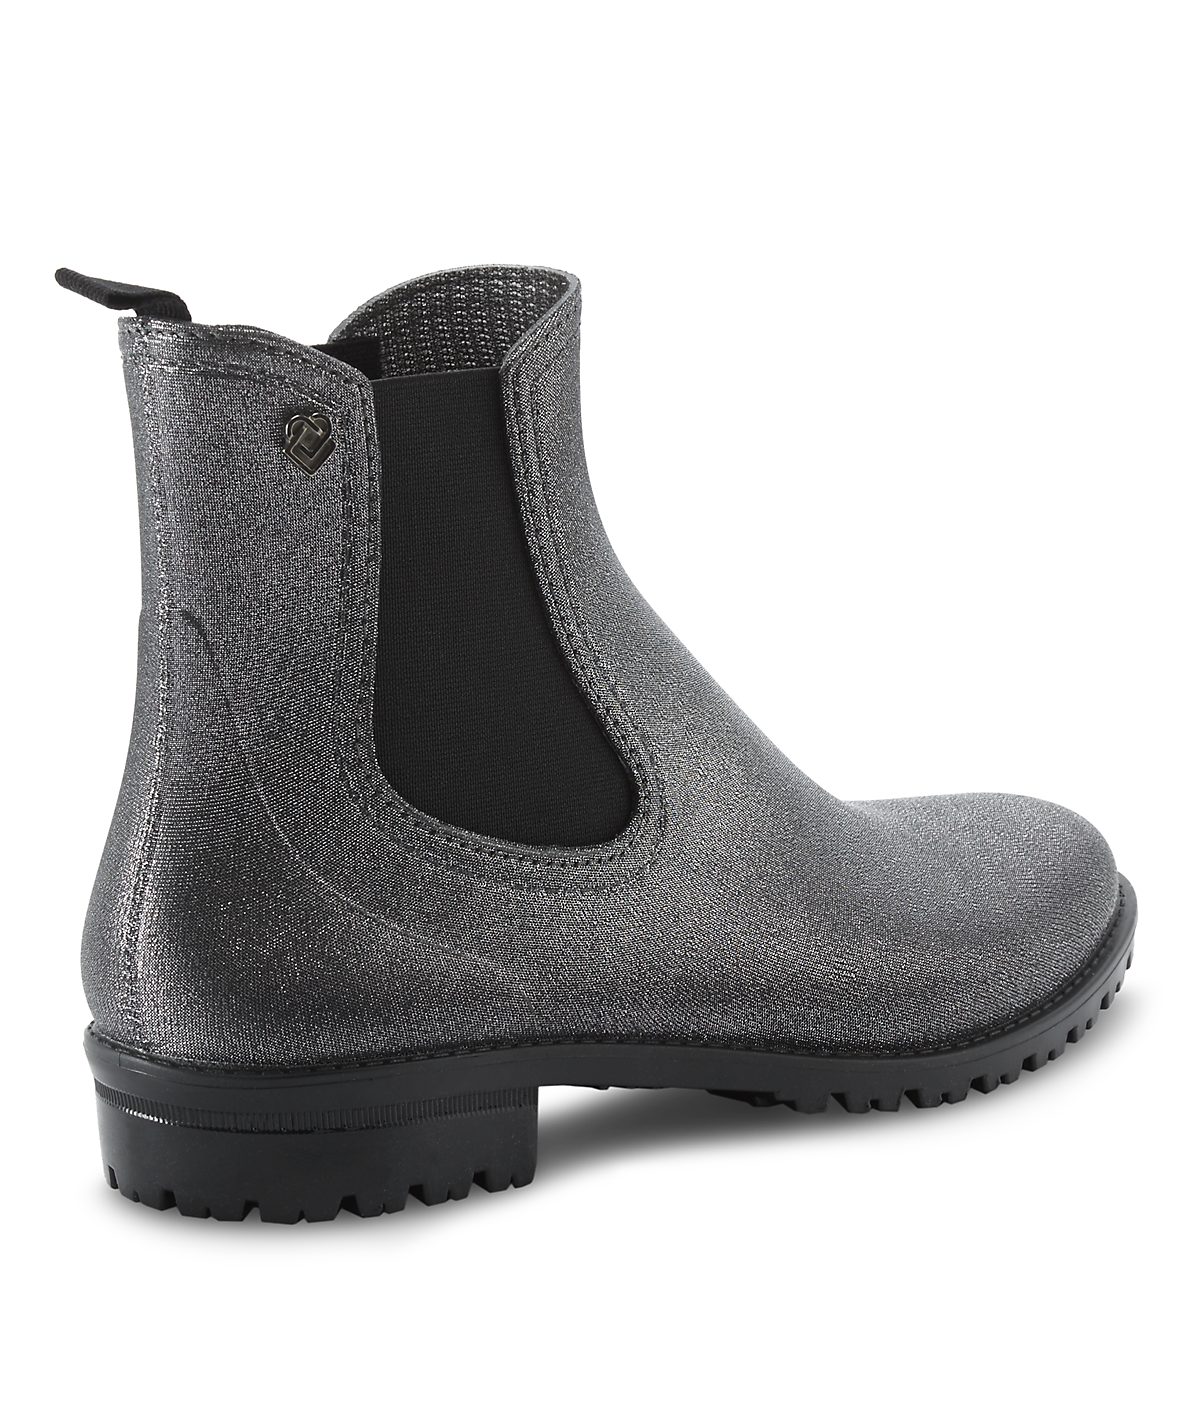 Chelsea gum boots from liebeskind